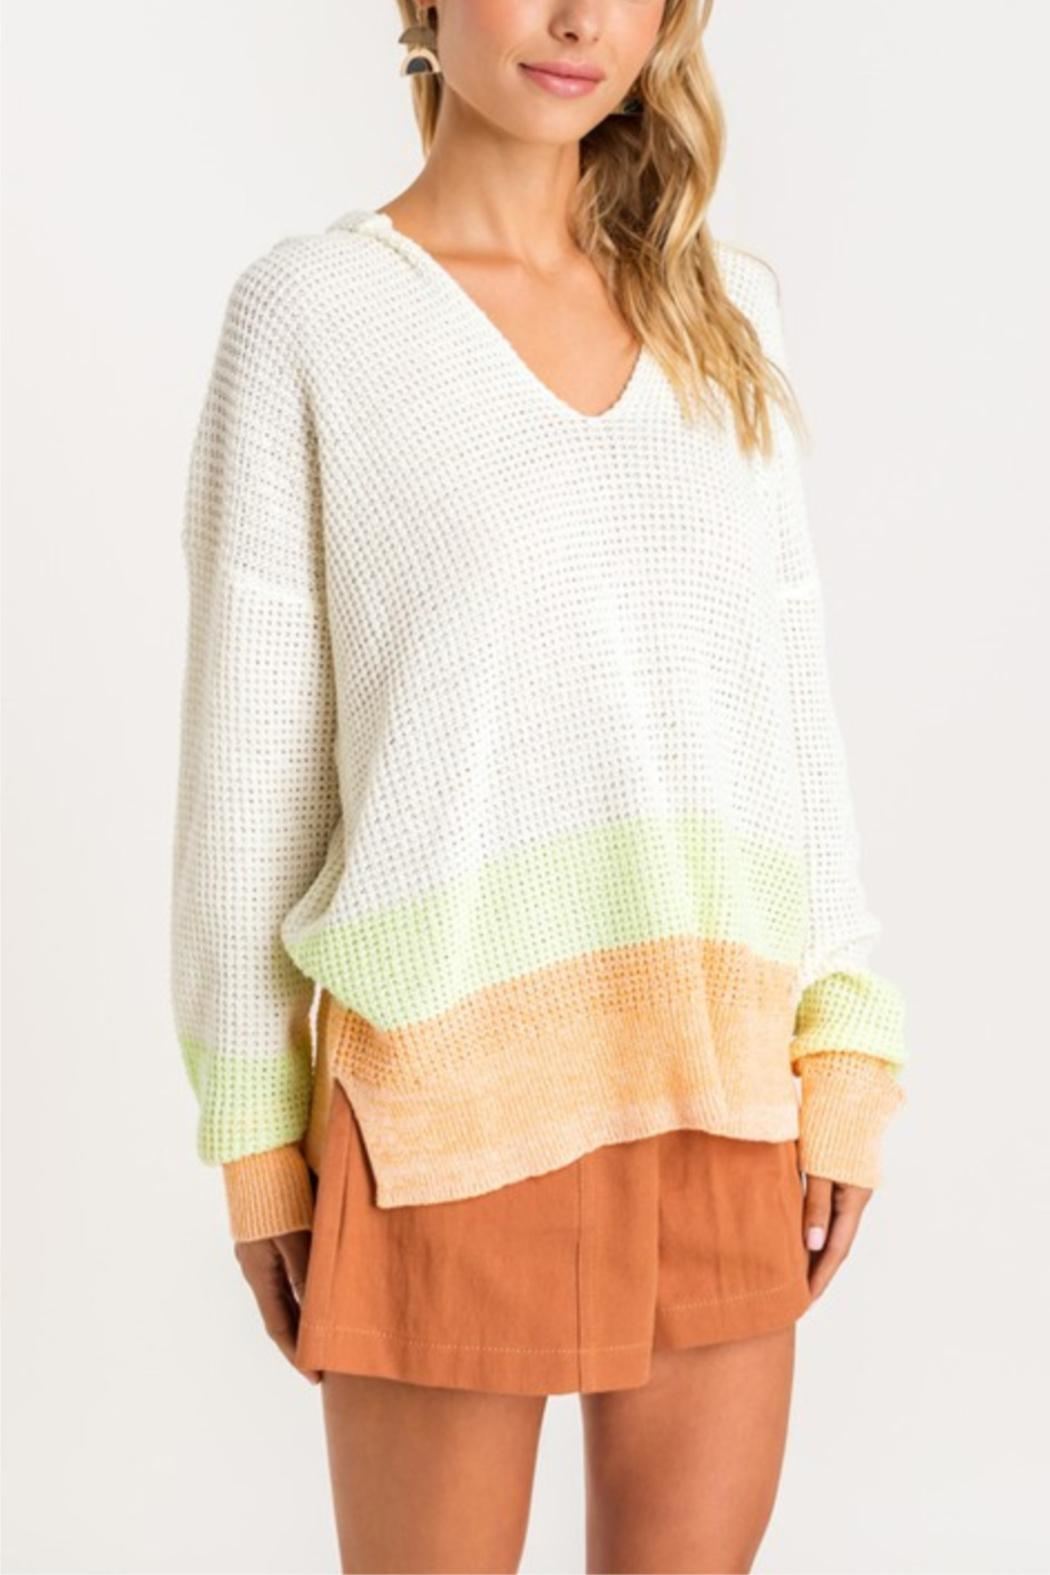 Lush Sherbert Dreams Sweater - Back Cropped Image